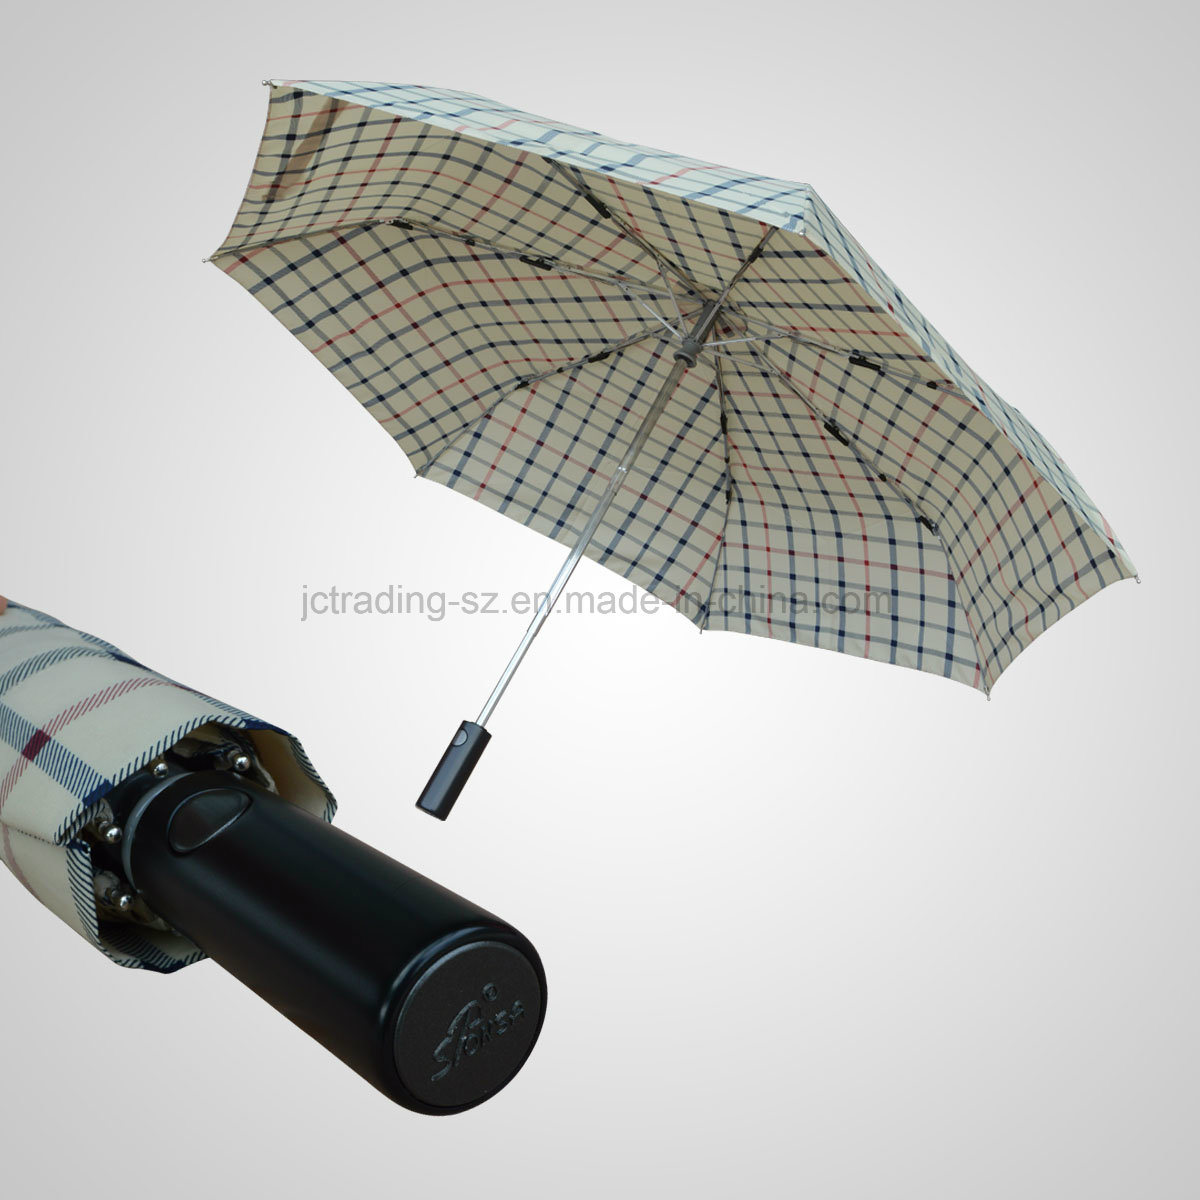 3 Fold Automatic Open&Close Lady Slim Umbrella (JF-AOC303)